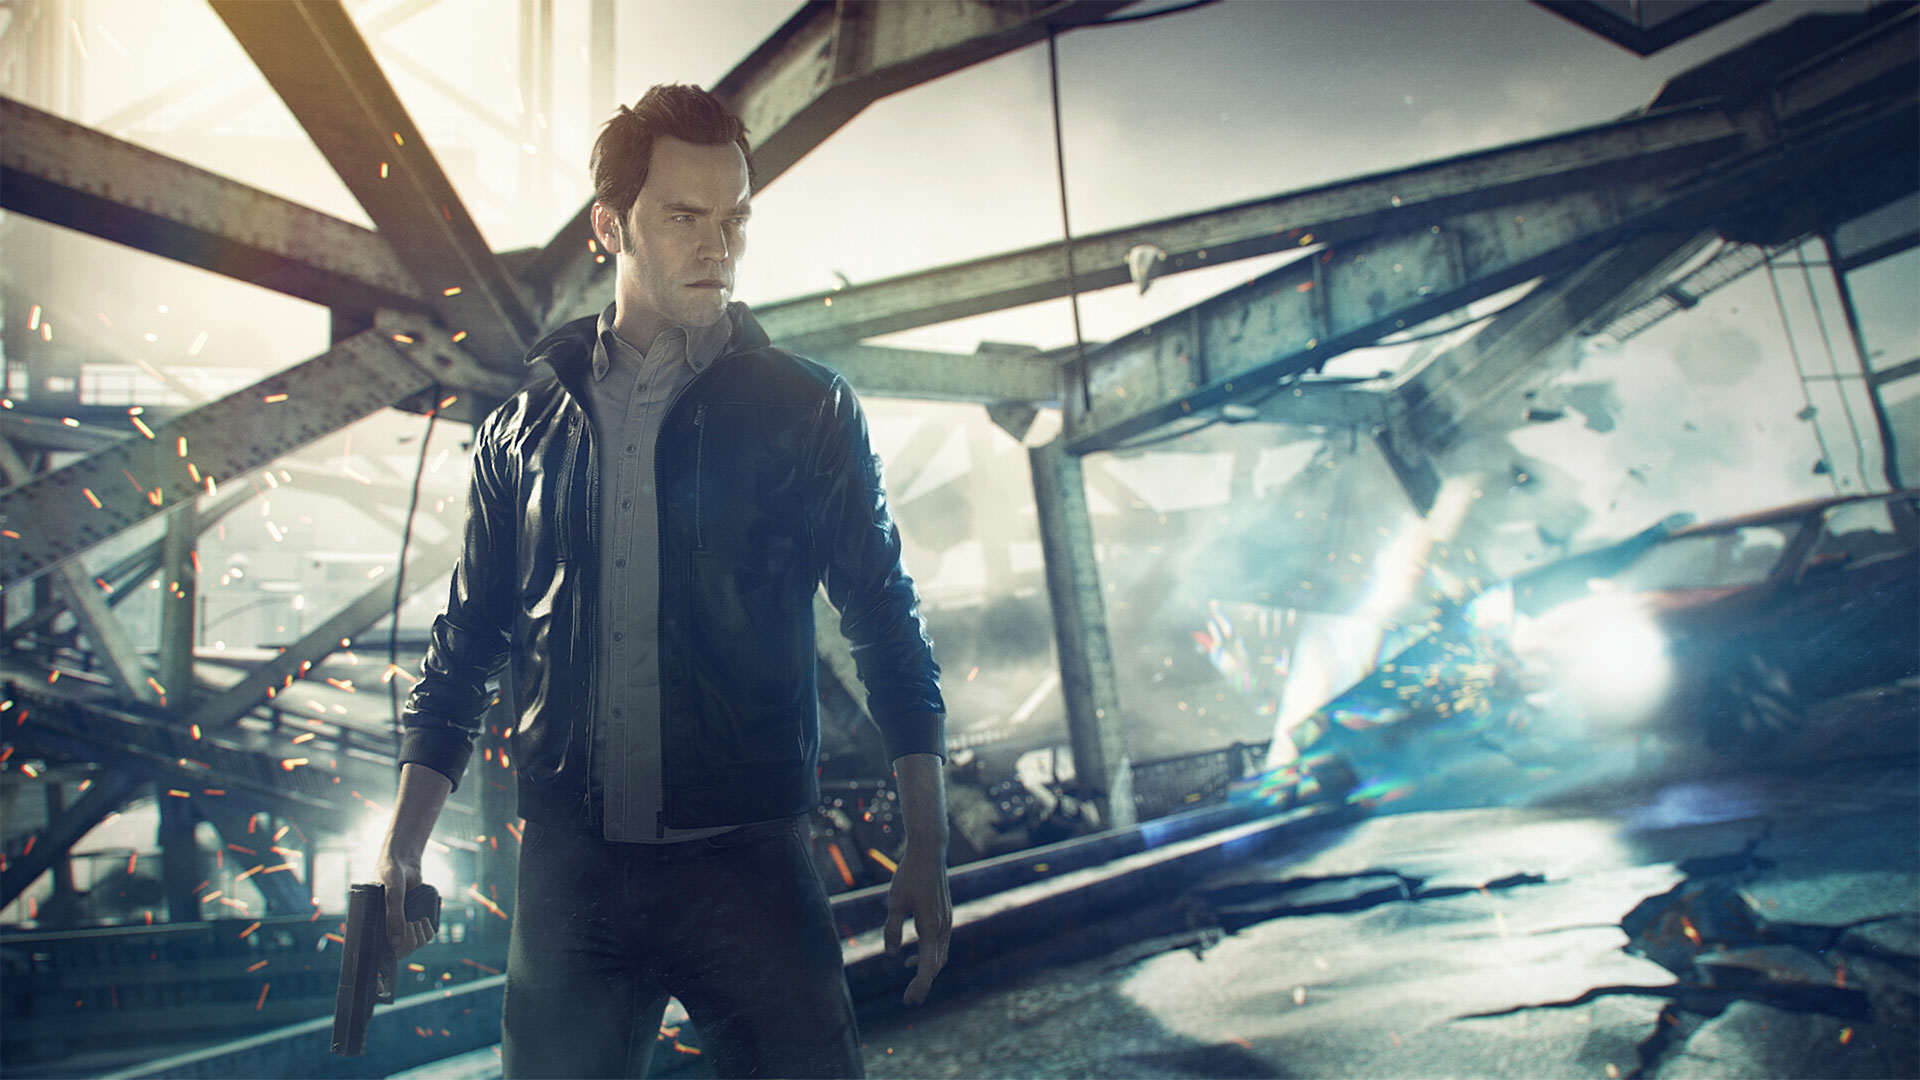 h See How Quantum Break Has Changed With This Cool Prototype Footage